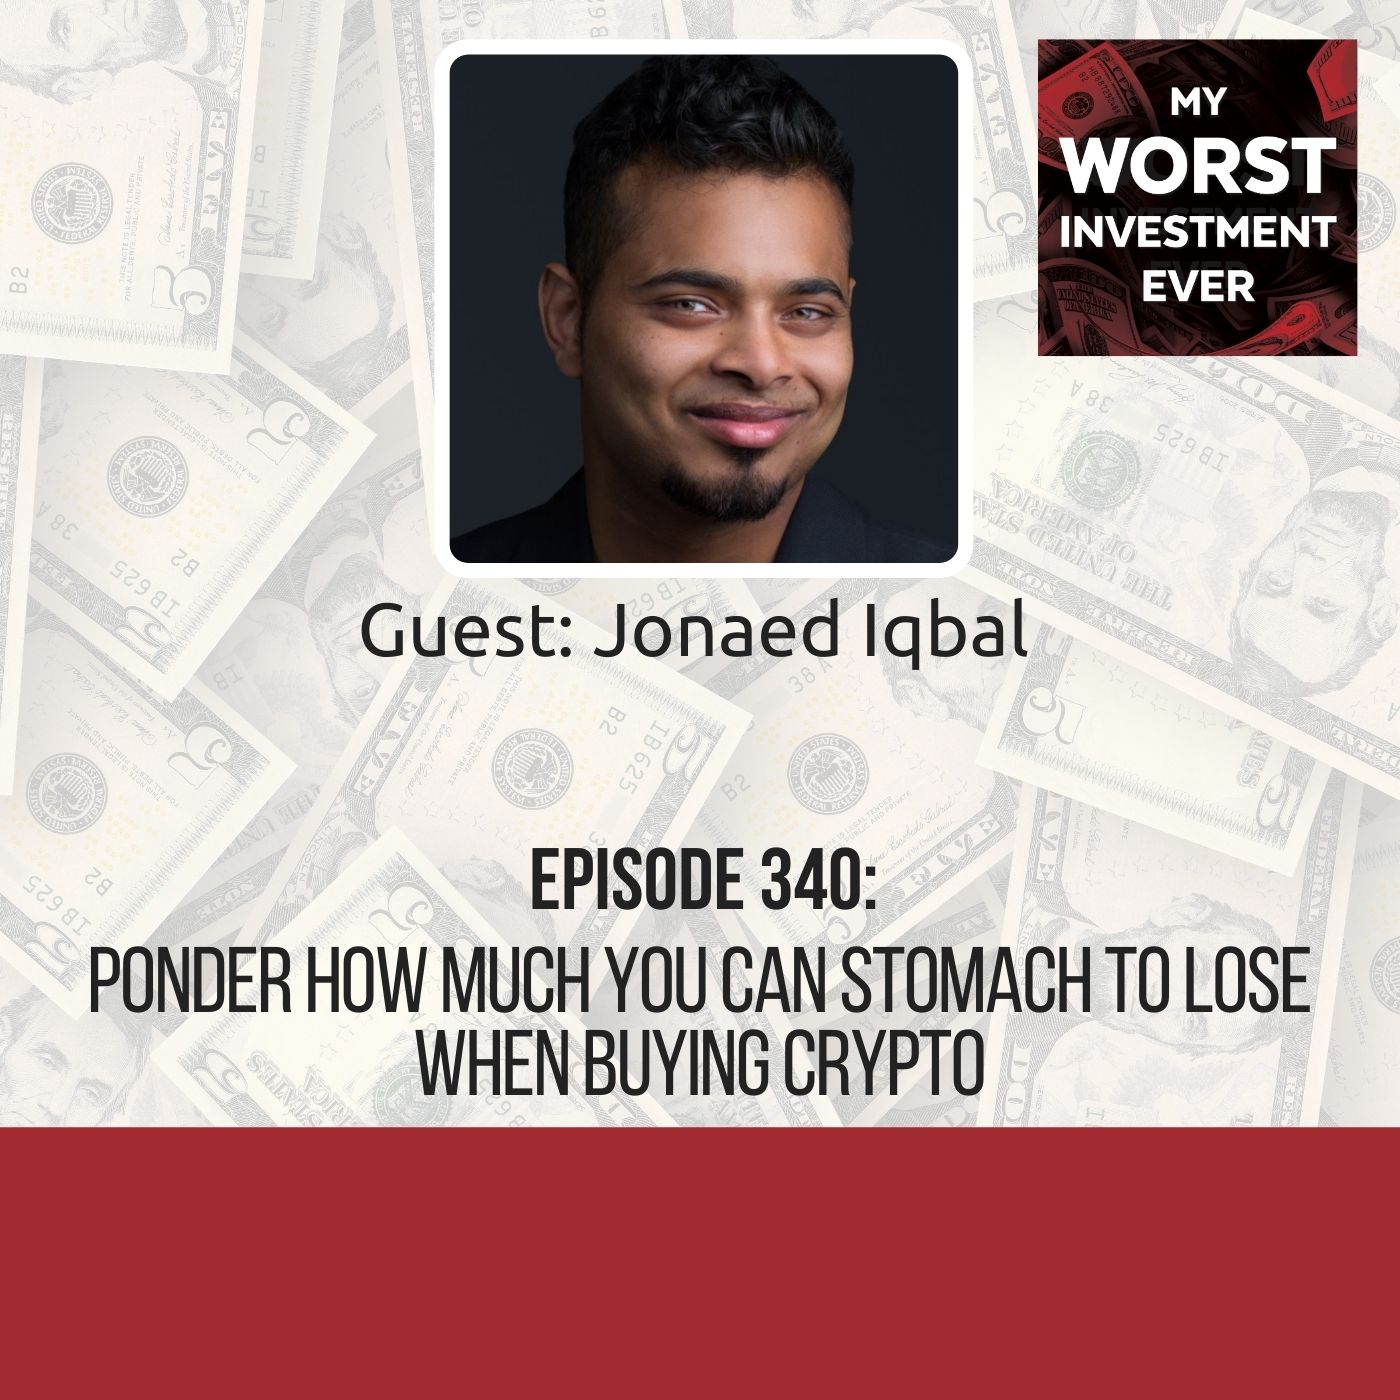 Jonaed Iqbal – Ponder How Much You Can Stomach to Lose When Buying Crypto